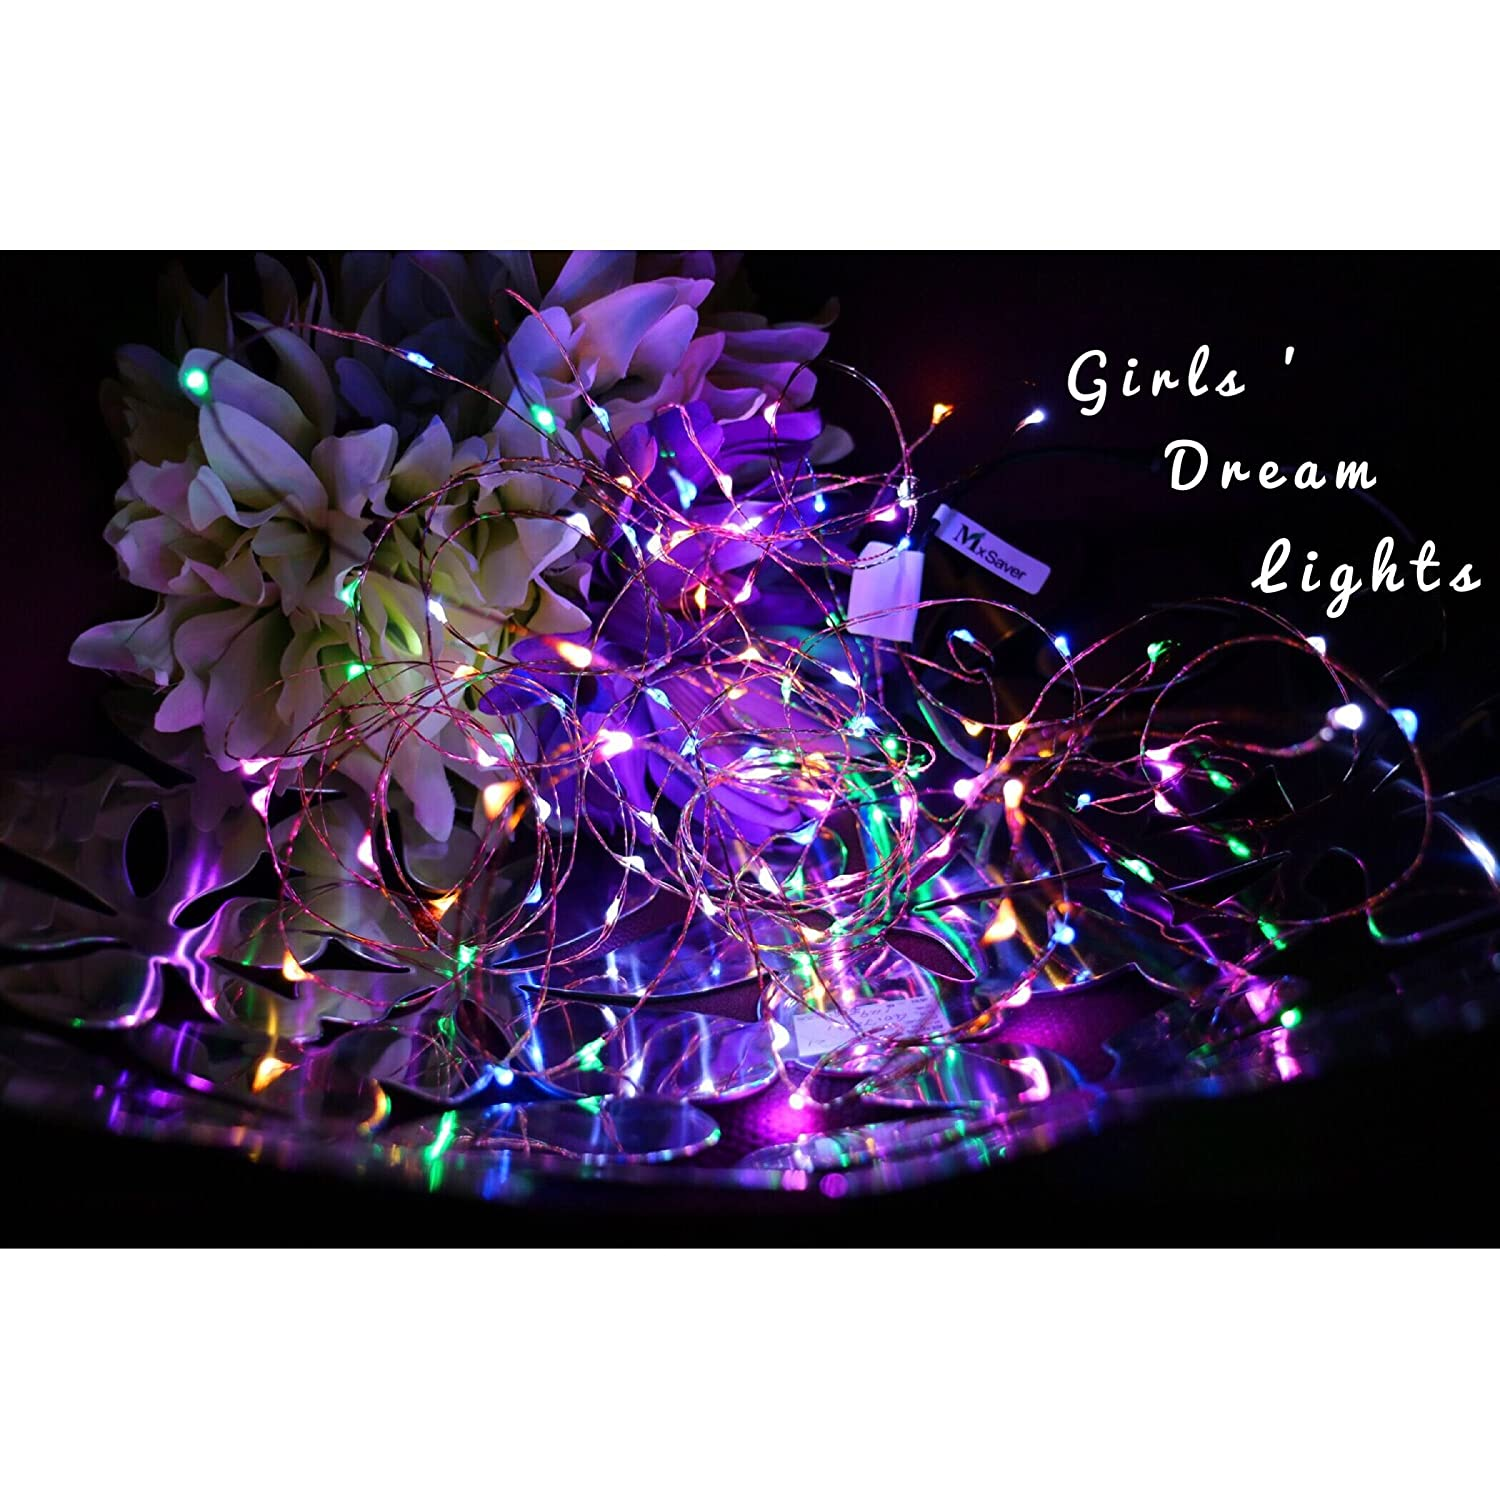 This controller lets you control 4 different branches of lights - Amazon Com Mxsaver Fairy Led Copper Wire String Lights Multi Colored 32 8foot 12v Waterproof Steady Mode Home Improvement